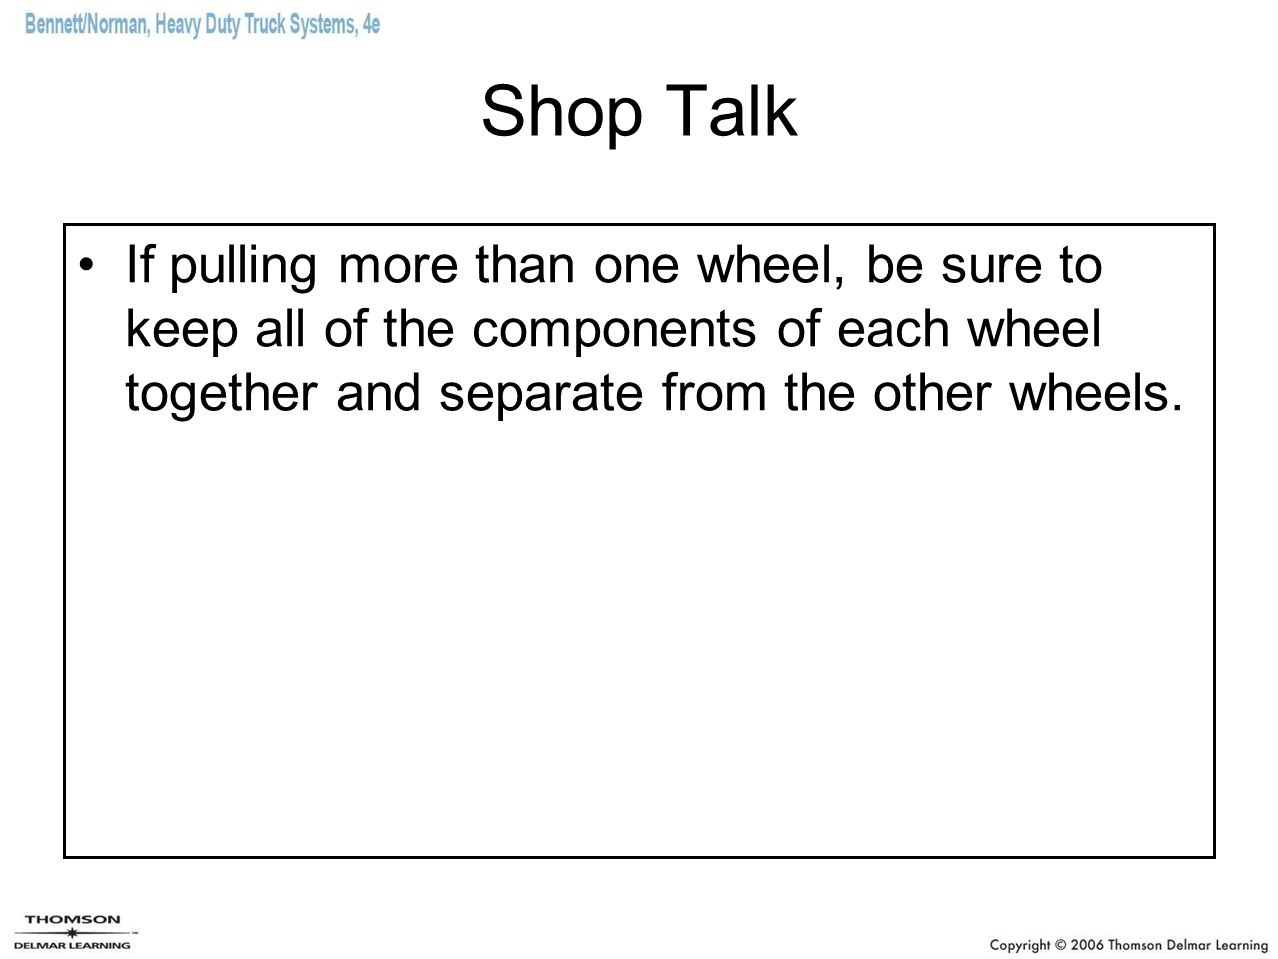 Shop Talk If pulling more than one wheel, be sure to keep all of the components of each wheel together and separate from the other wheels.